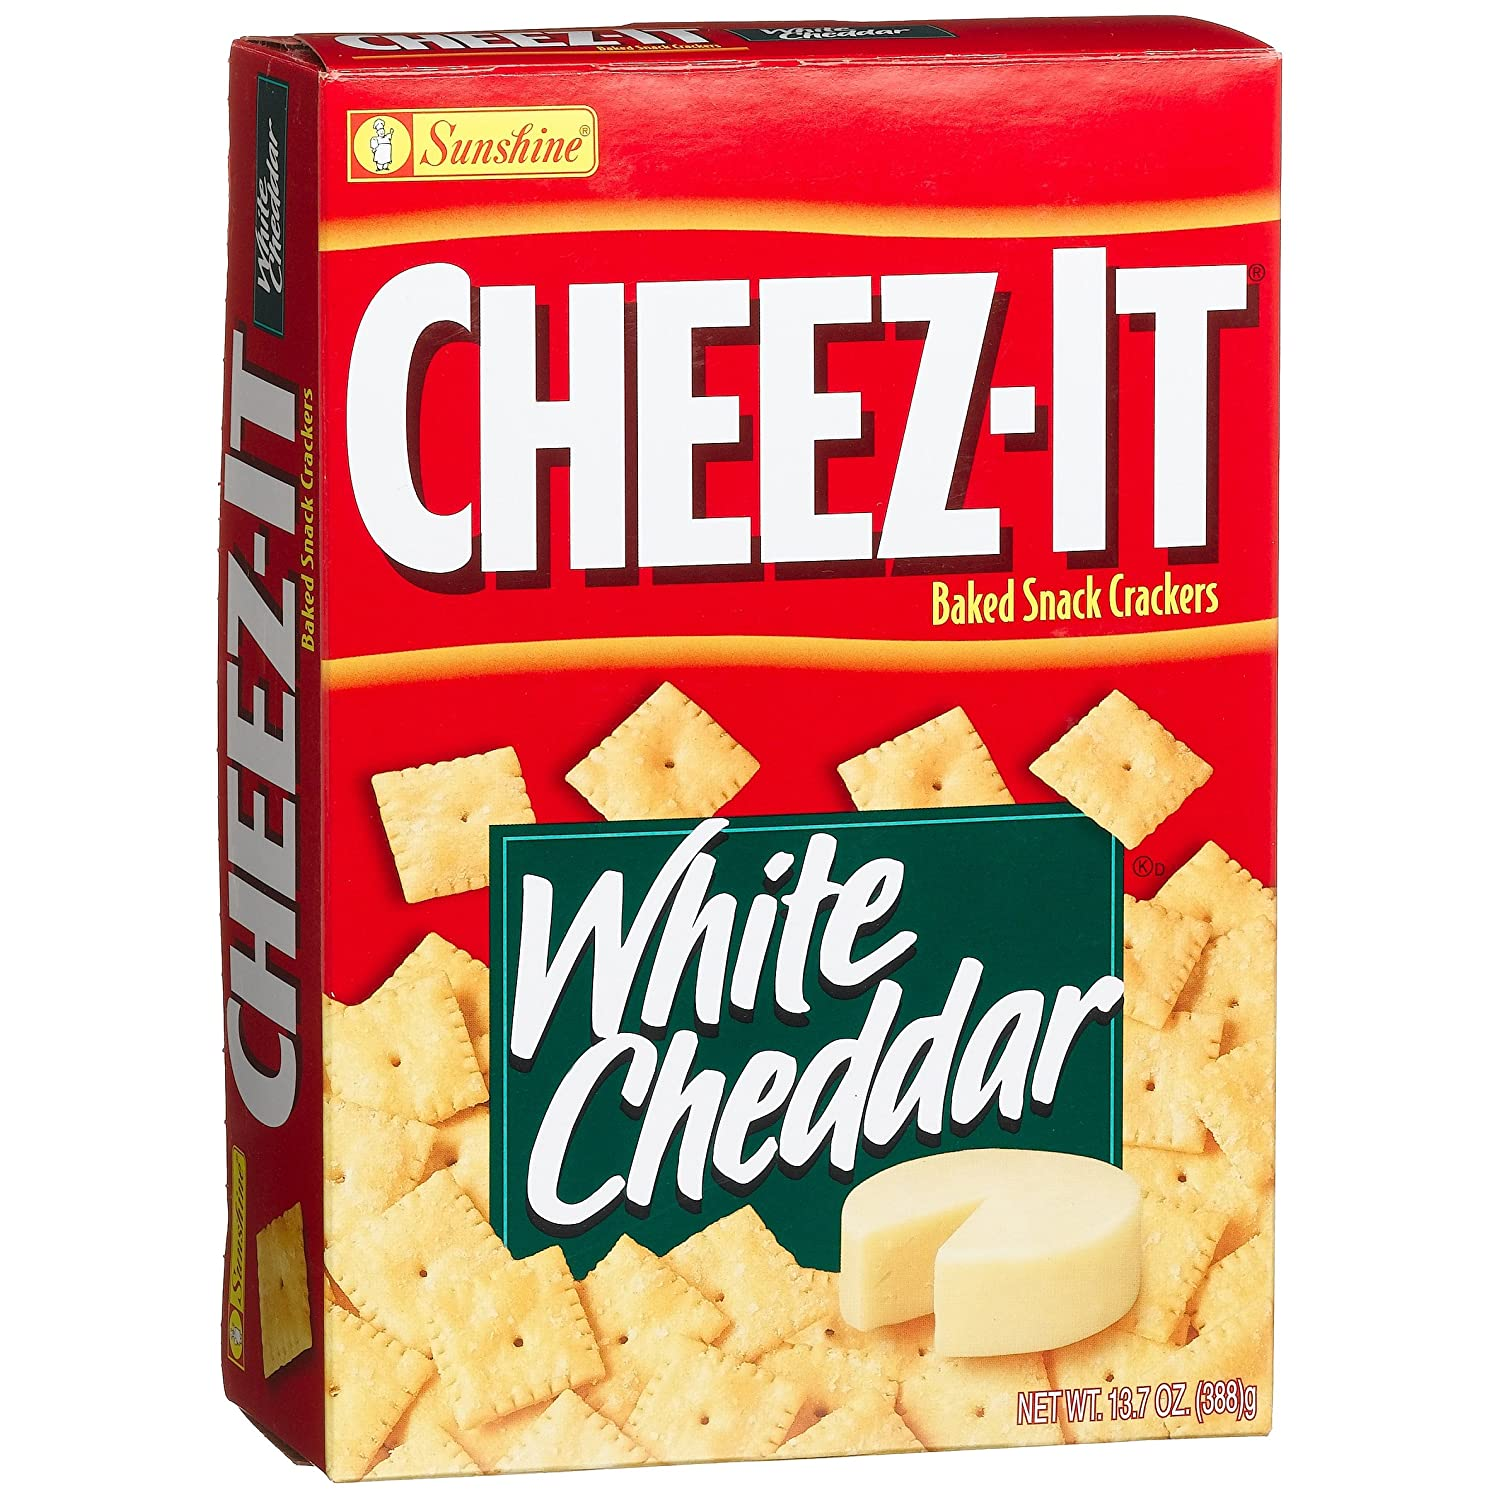 White Cheddar Cheese Its